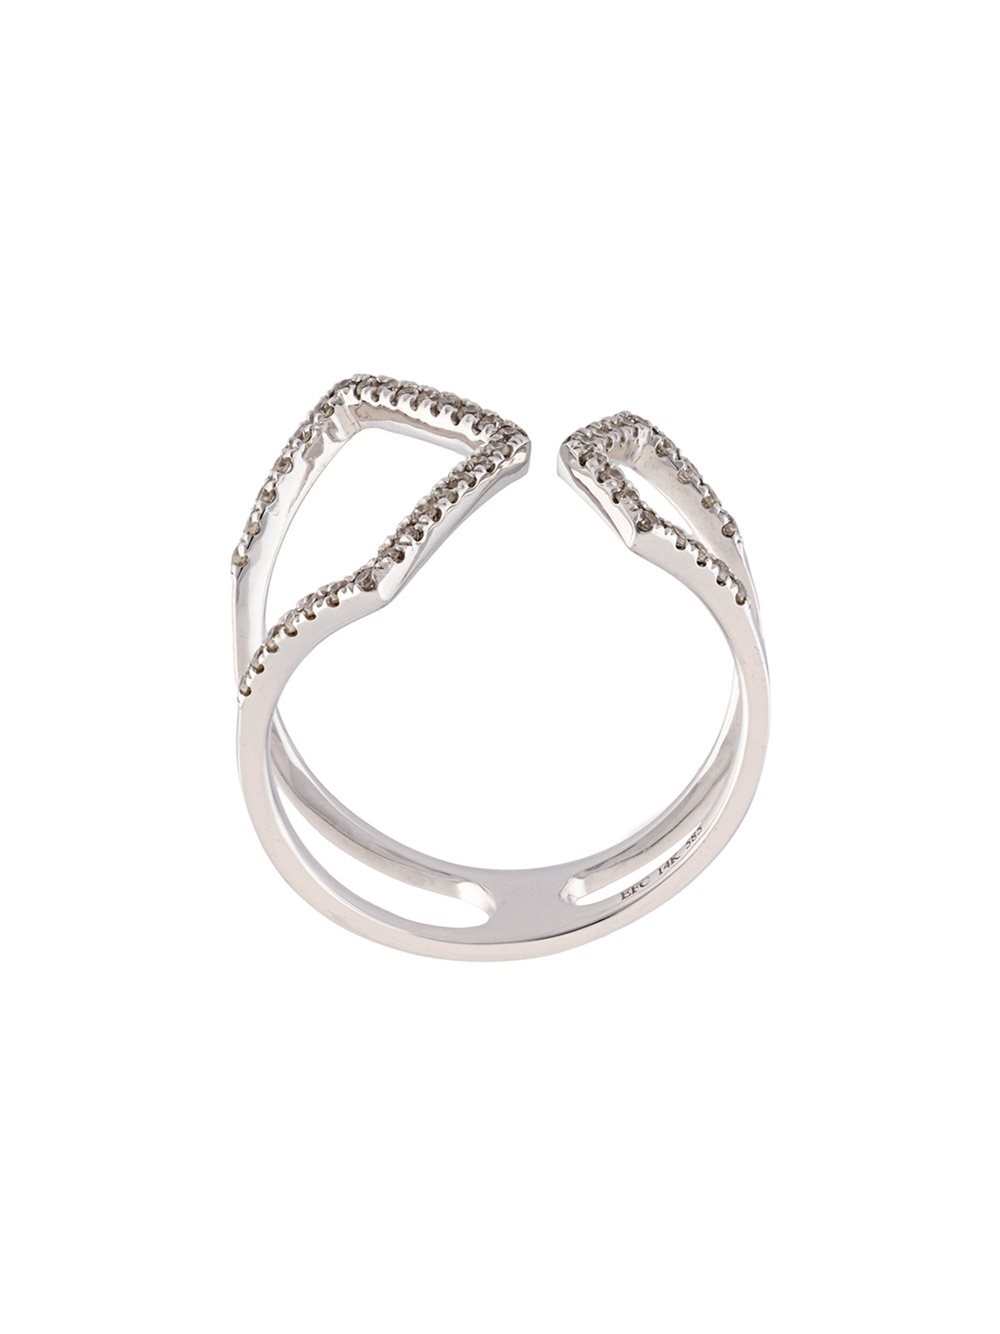 Ef Collection Diamond Split Chevron Ring White Gold Women Within Newest Chevron Rings White Gold (Gallery 10 of 15)